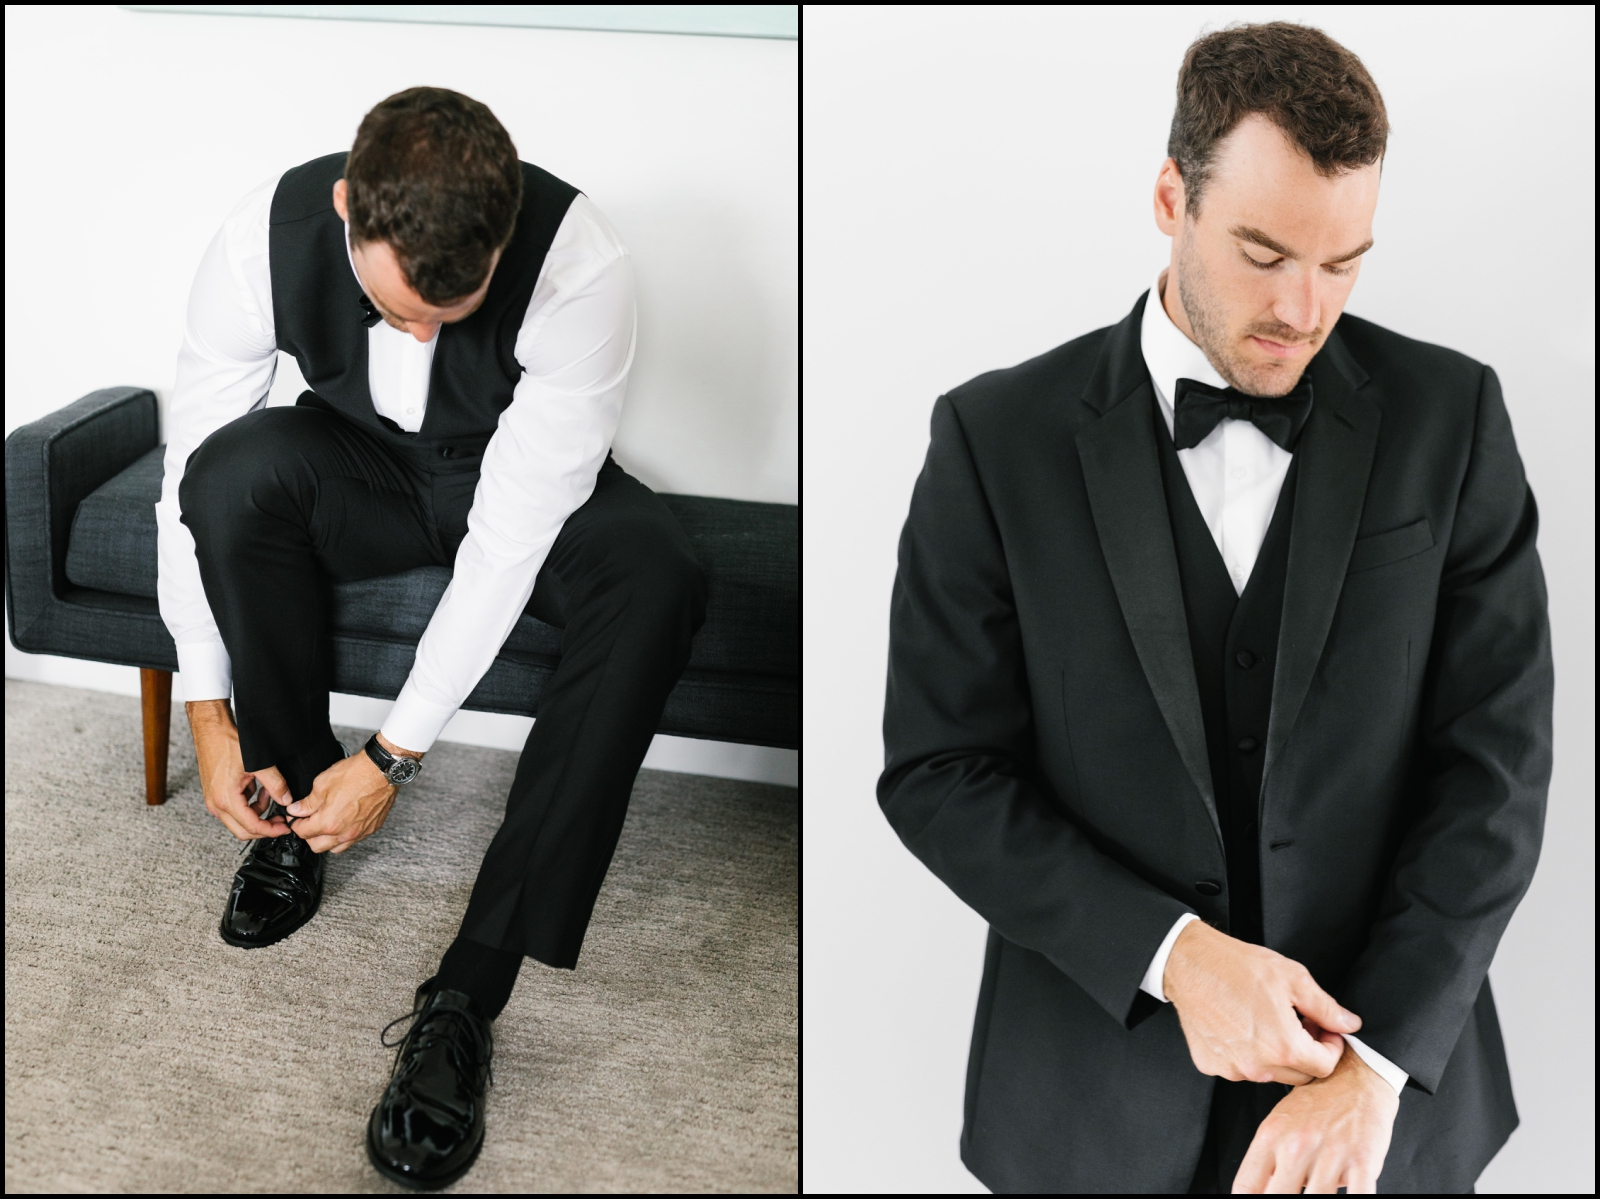 groom getting prepared for his wedding